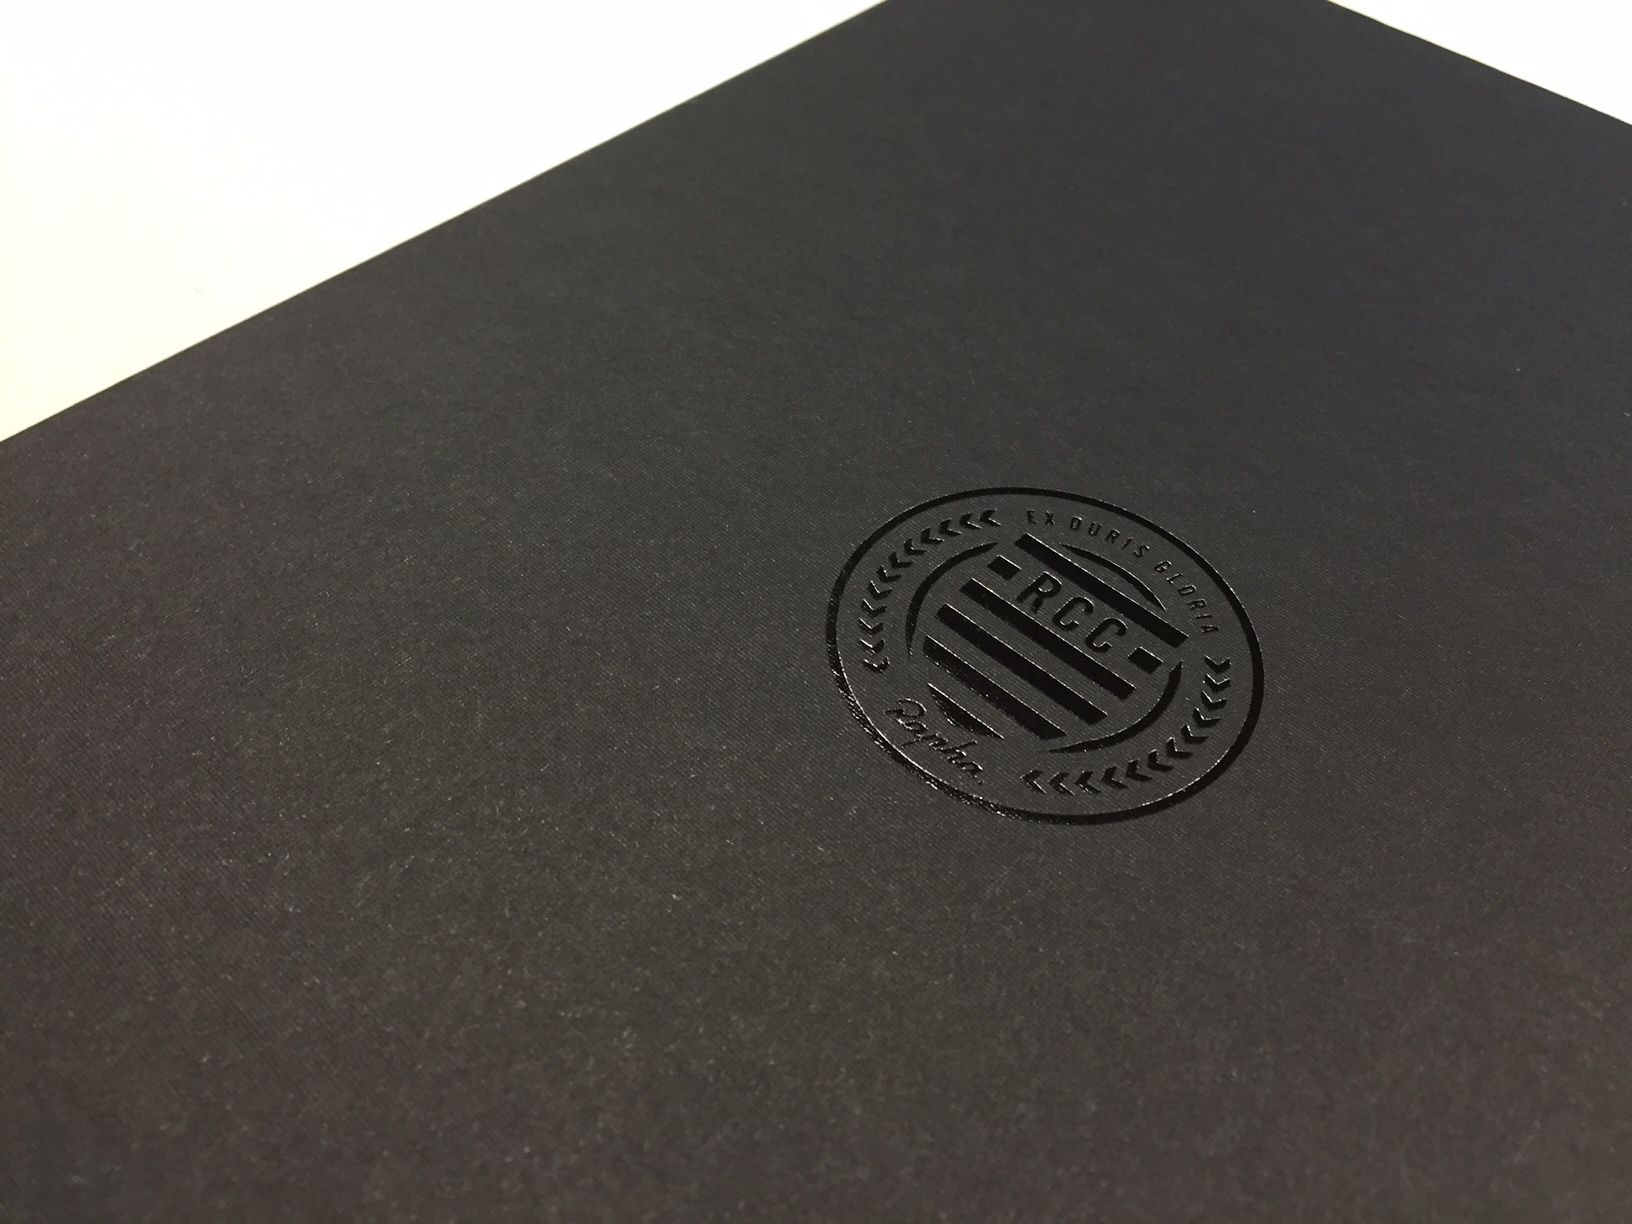 Black foiled logo and black GF Smith Colorplan stock good pair